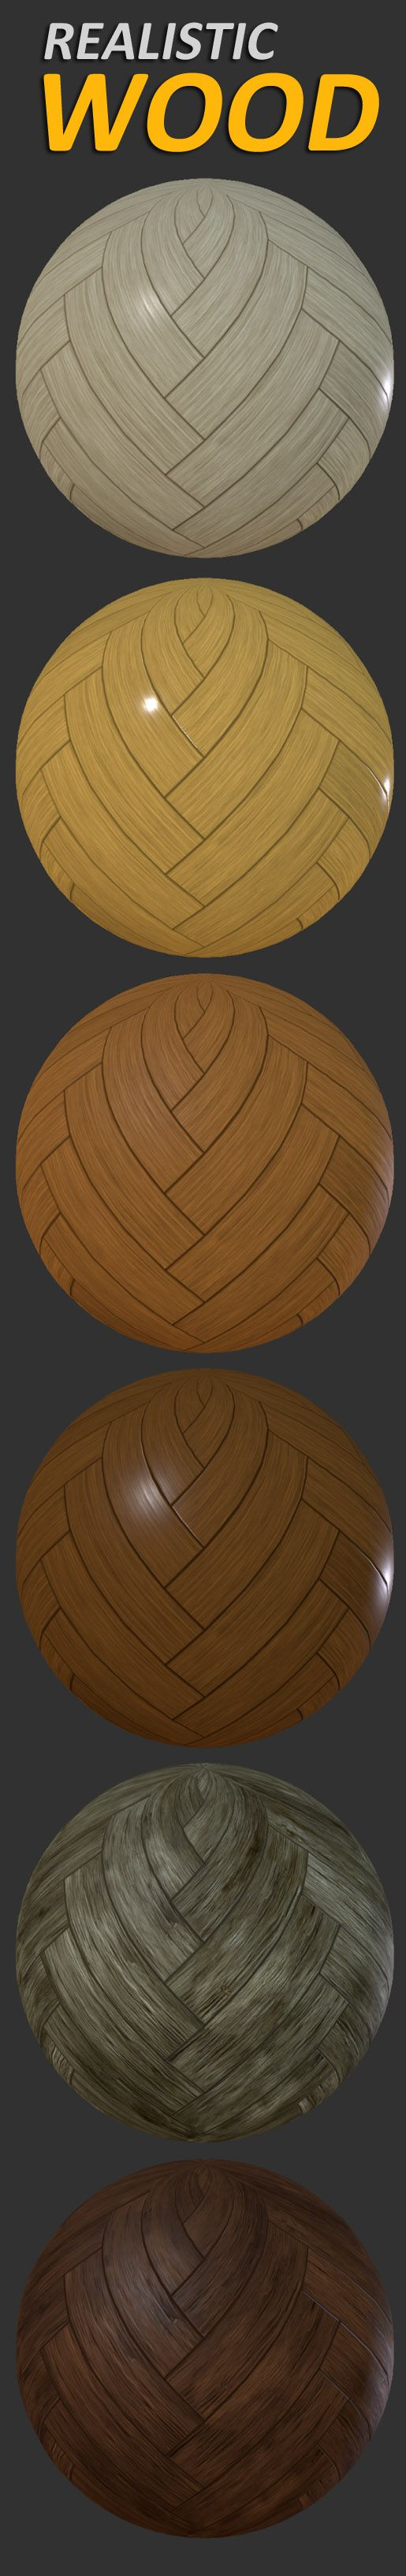 Realistic Wood Textures: - 4 types of Wood for Furniture (3 levels of glossiness) - Simple Old Wood - 2 types of Wooden Parquet (3 levels of glossiness) - Old Wooden Parquet - Simple Painted Wood - Damaged Painted Wood - Wooden Planks - Painted Wooden Planks  All wood style includes a BW Albedo map for customized color.  Unity Package with Standard Specular materials included.